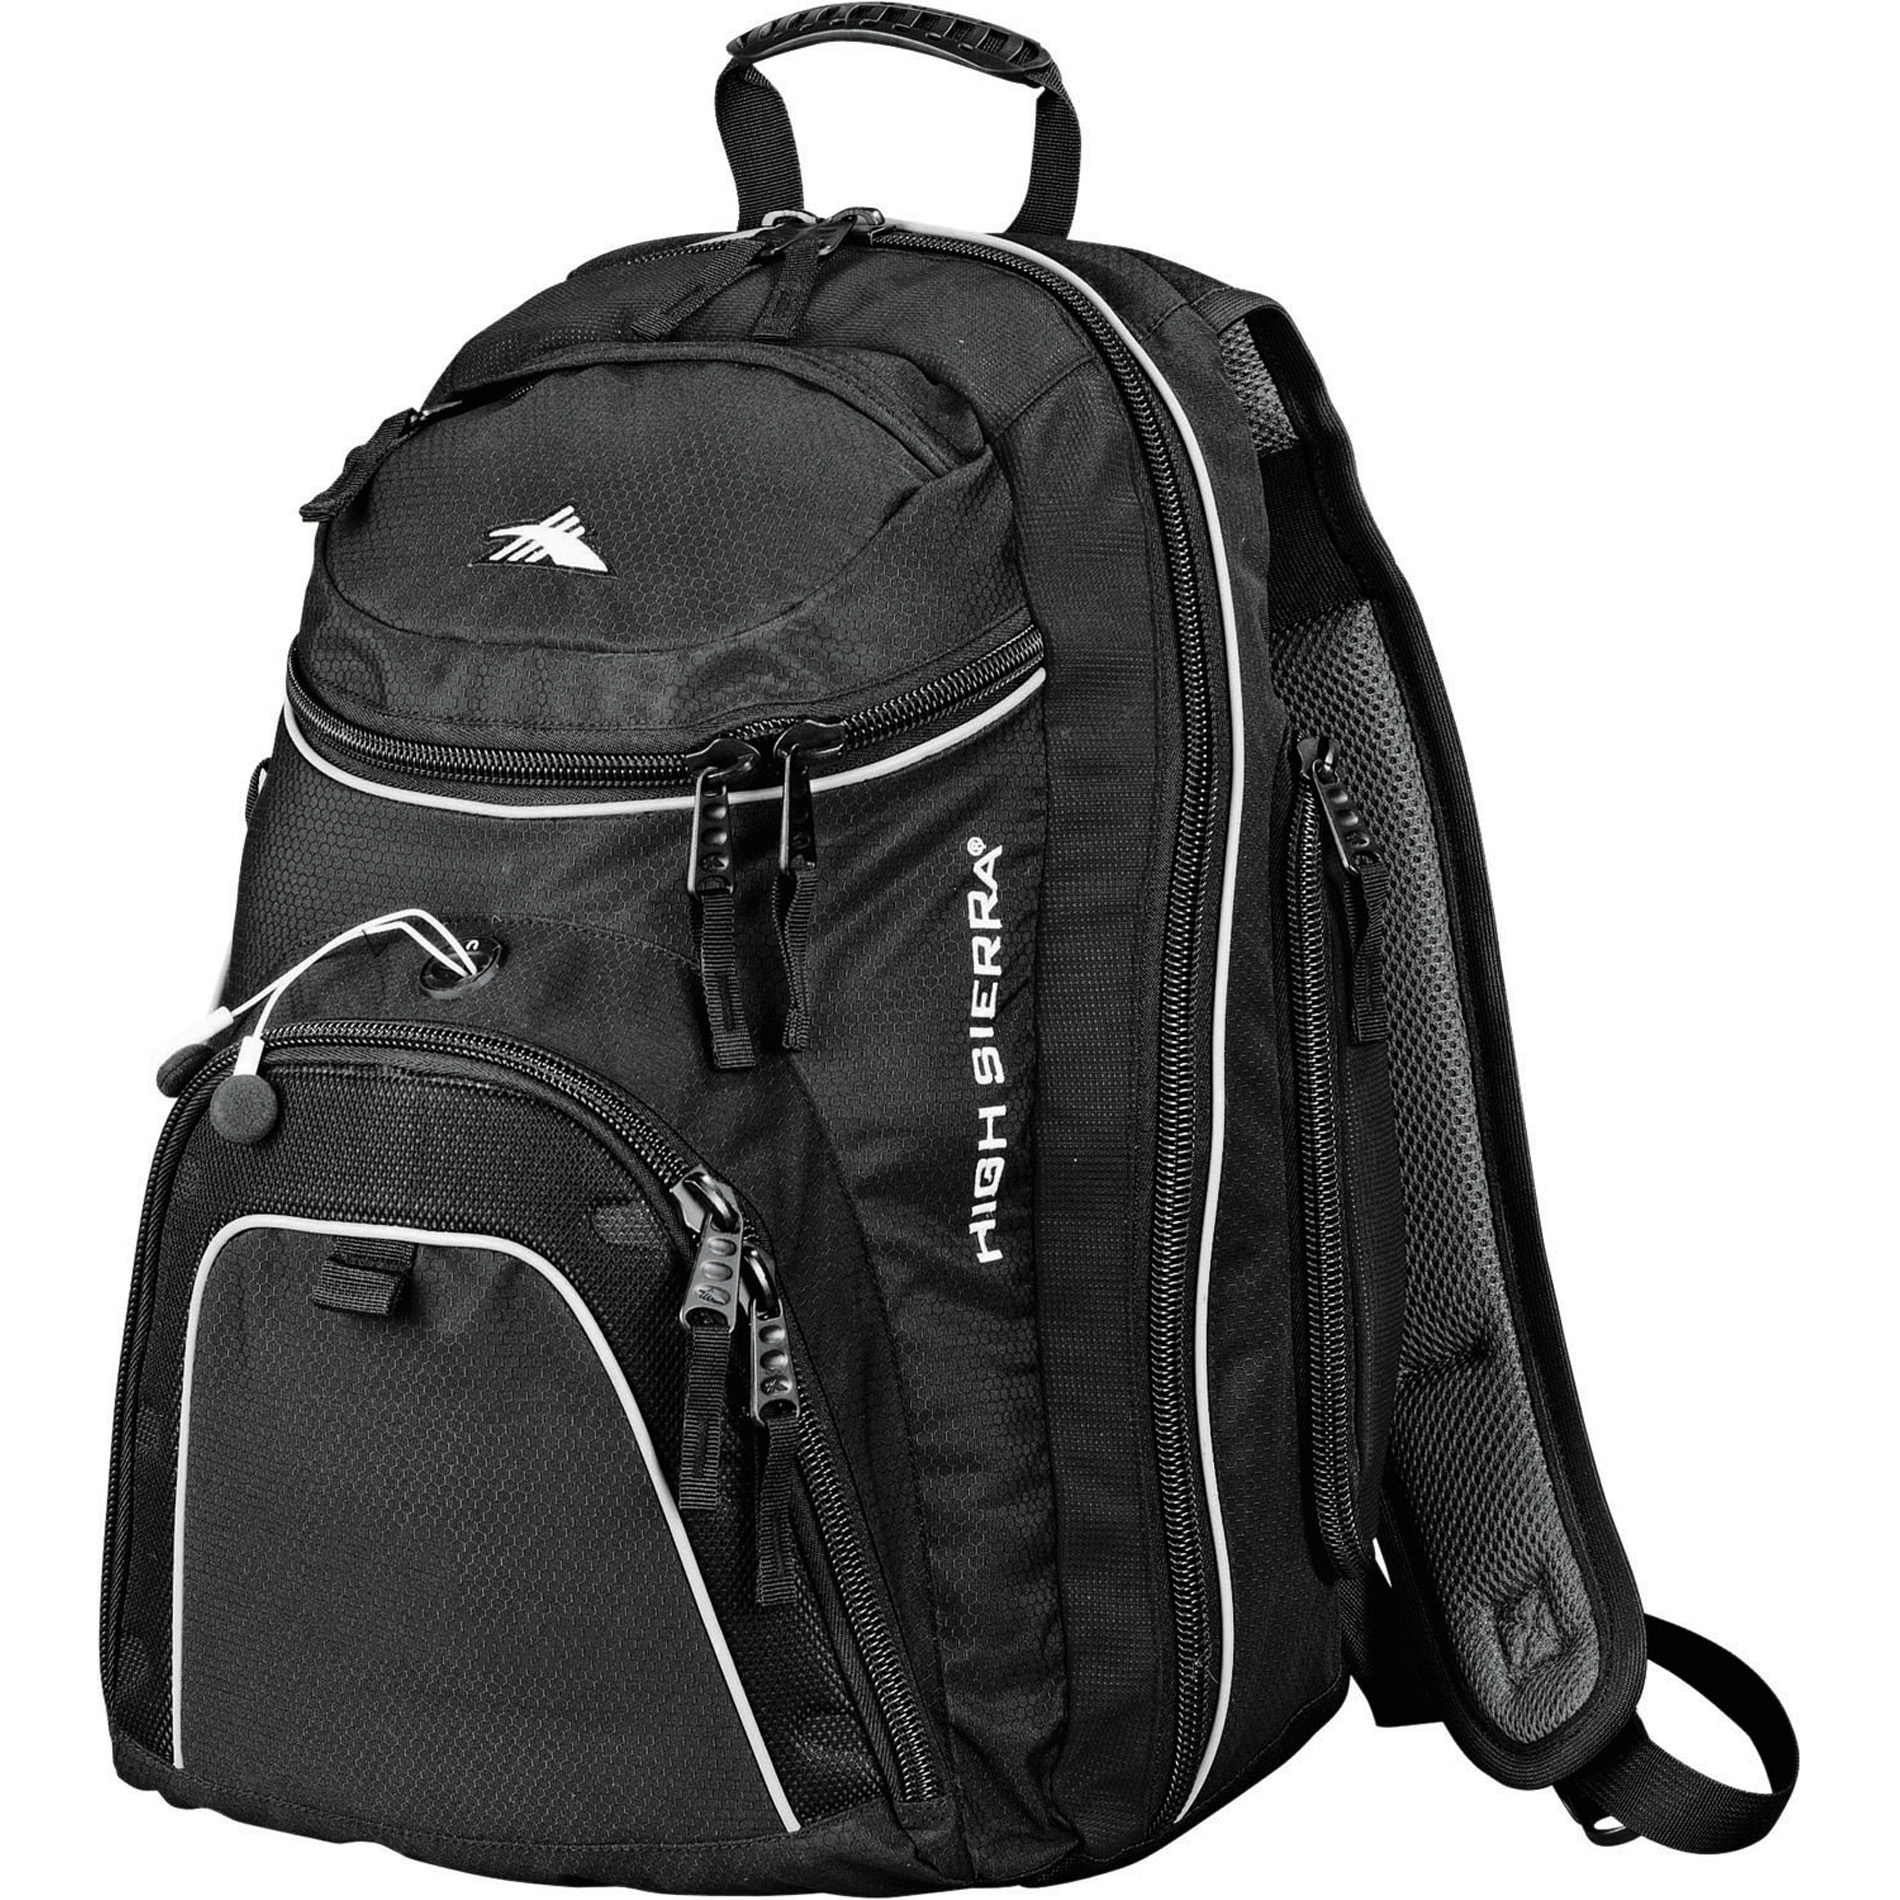 High Sierra 8050-94 - Jack-Knife Backpack